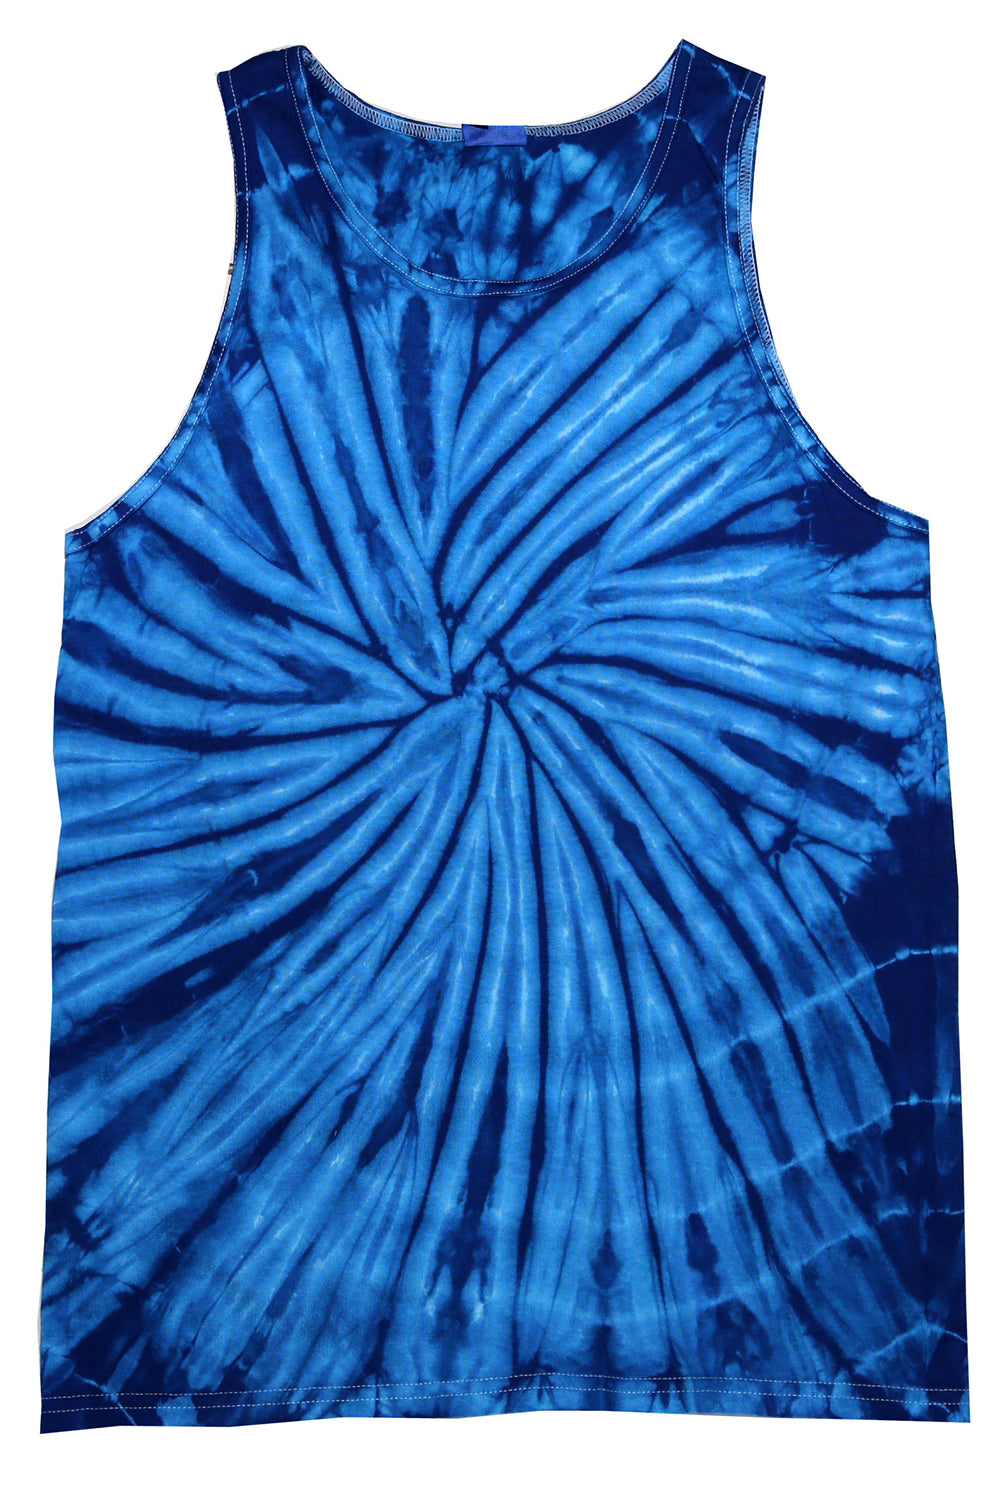 Blue Spider Tie Dye Tank Top